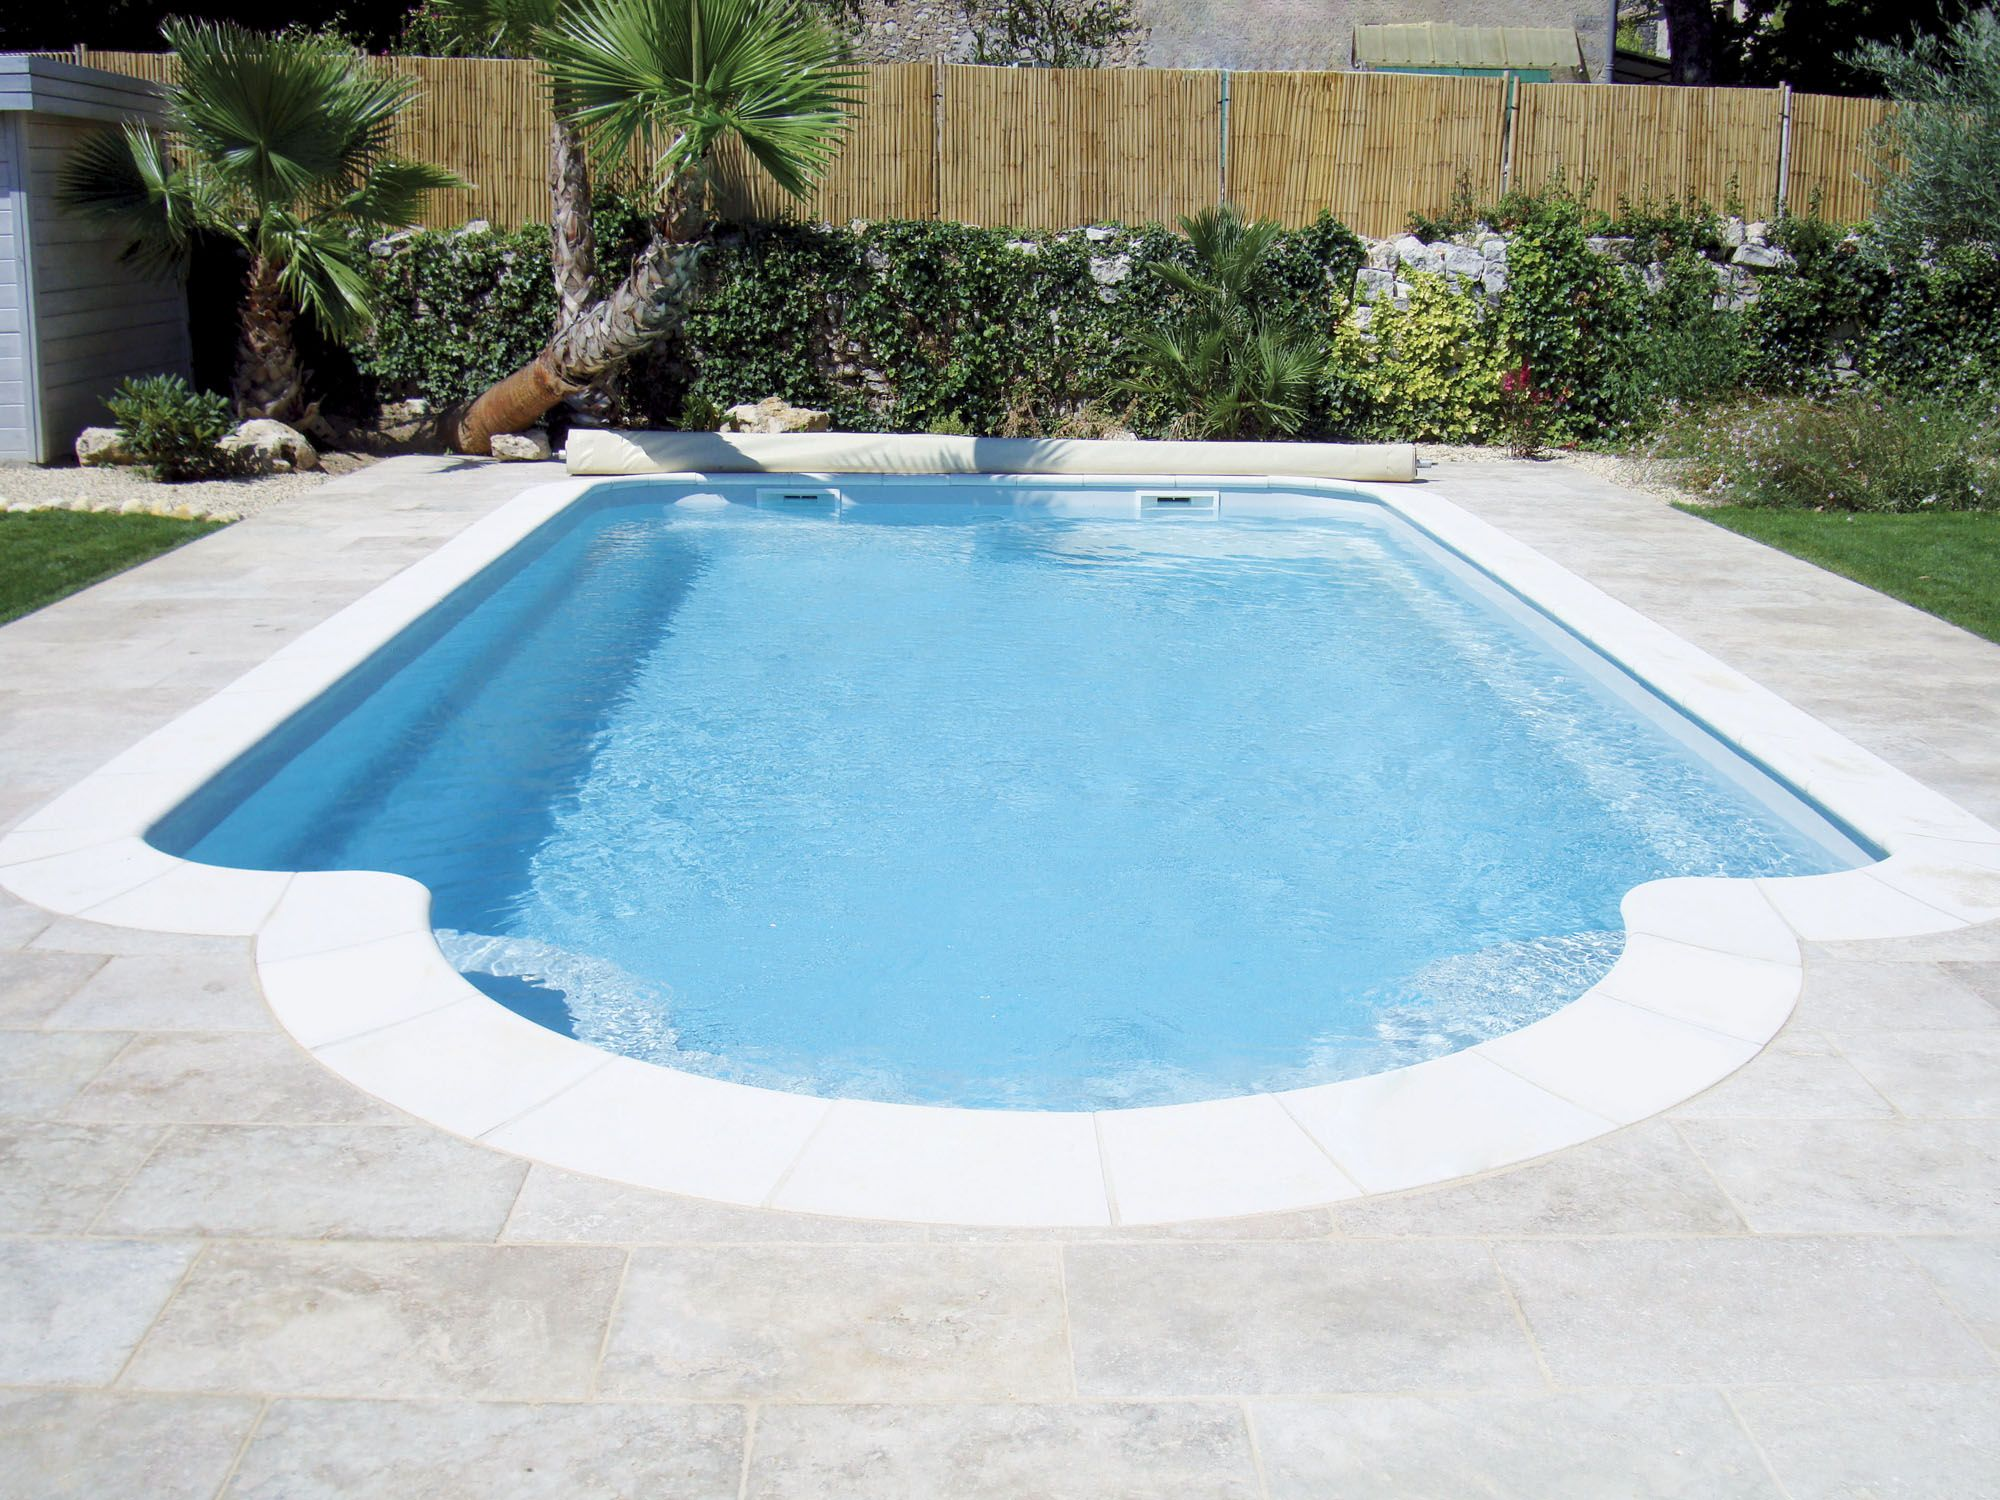 Piscine coque polyester arp ge fabrication fran aise for Coque piscine polyester